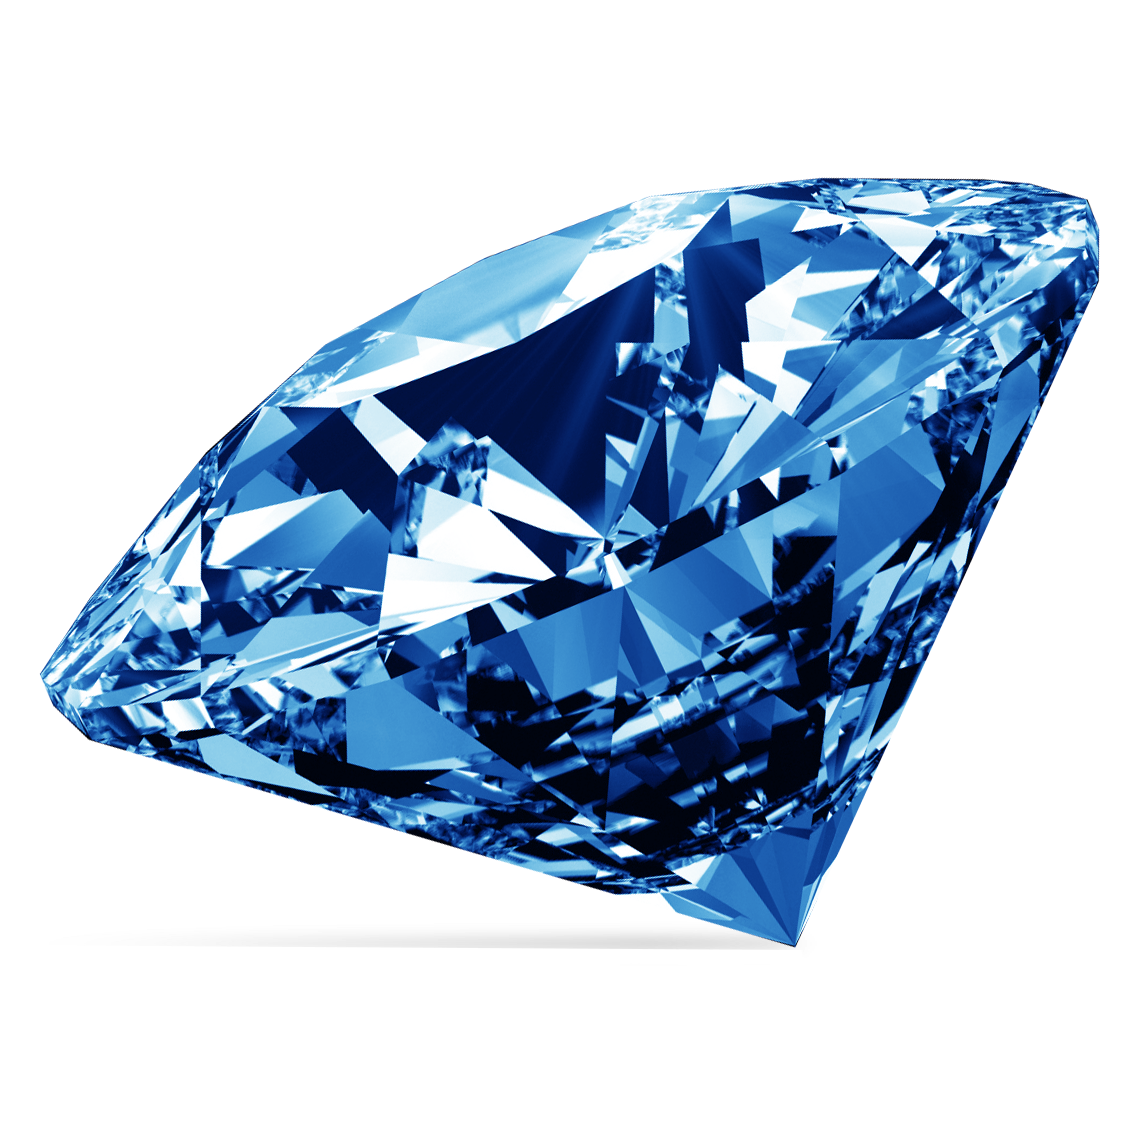 Clipart diamond pile diamond. Png images free download